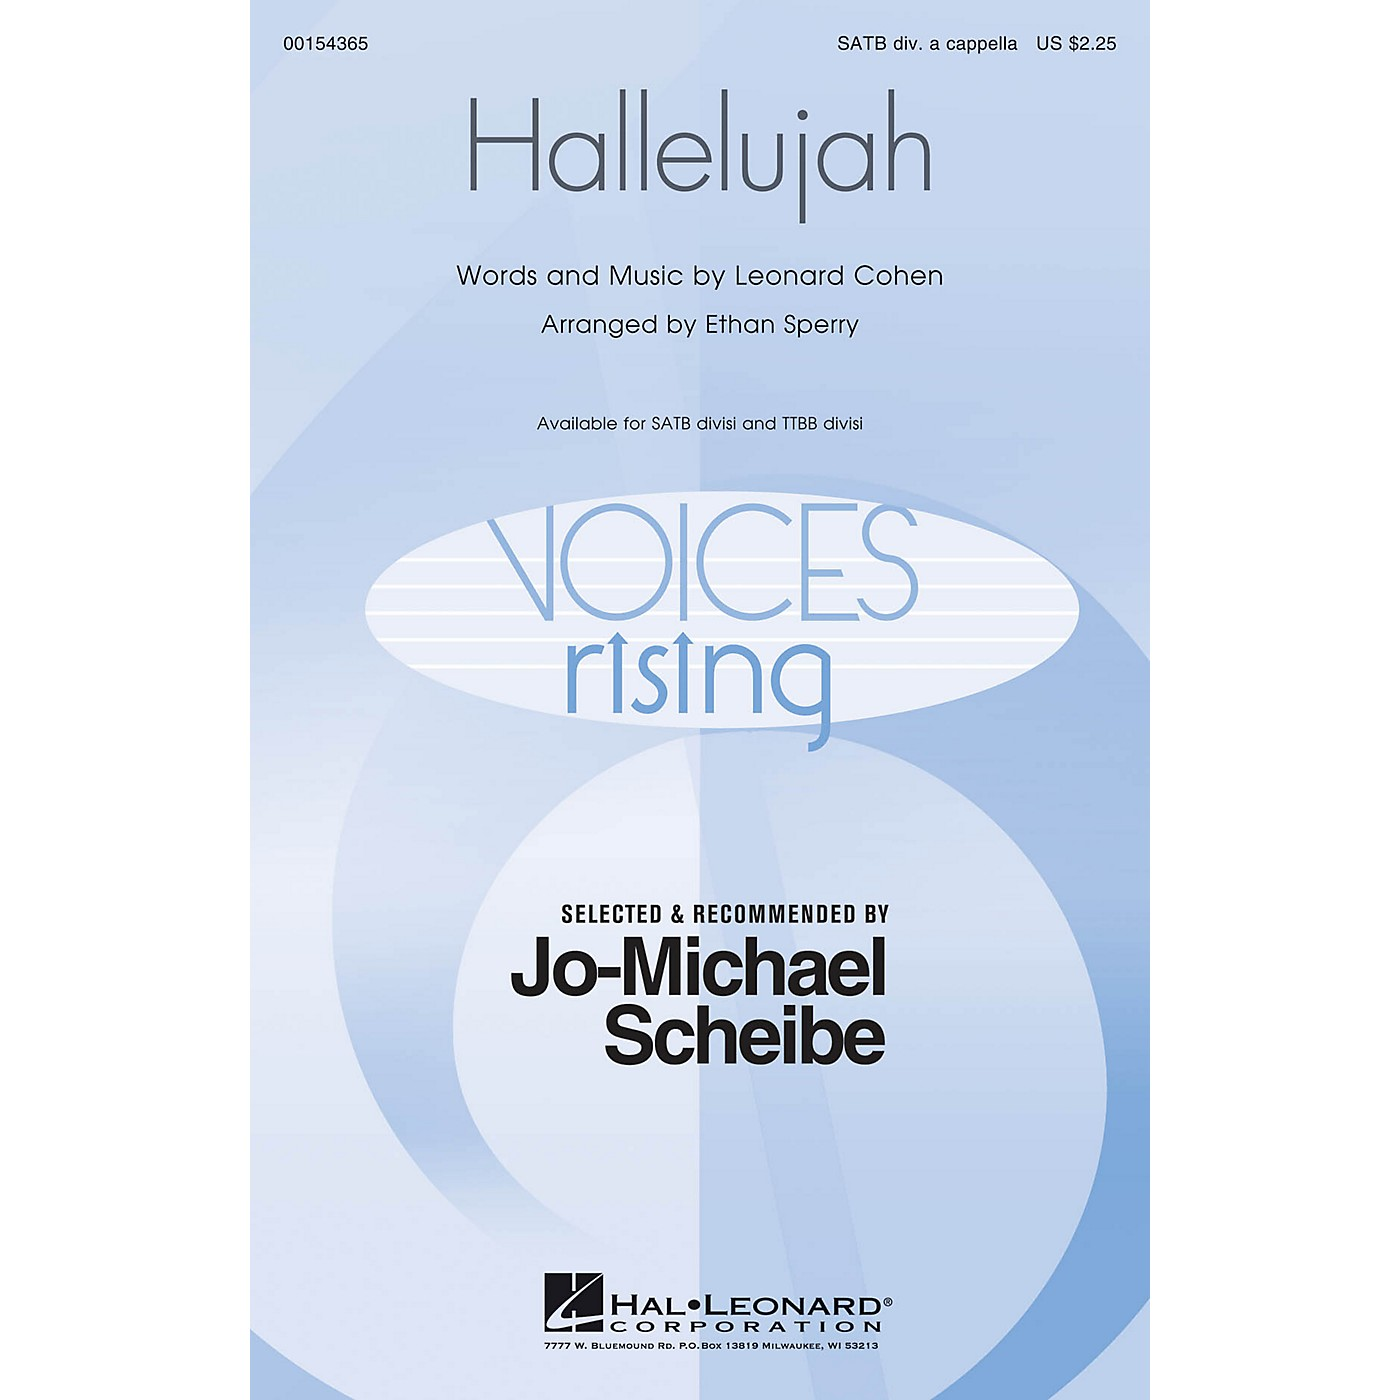 Hal Leonard Hallelujah (Selected and Recommended by Jo-Michael Scheibe) SATB DV A Cappella arranged by Ethan Sperry thumbnail